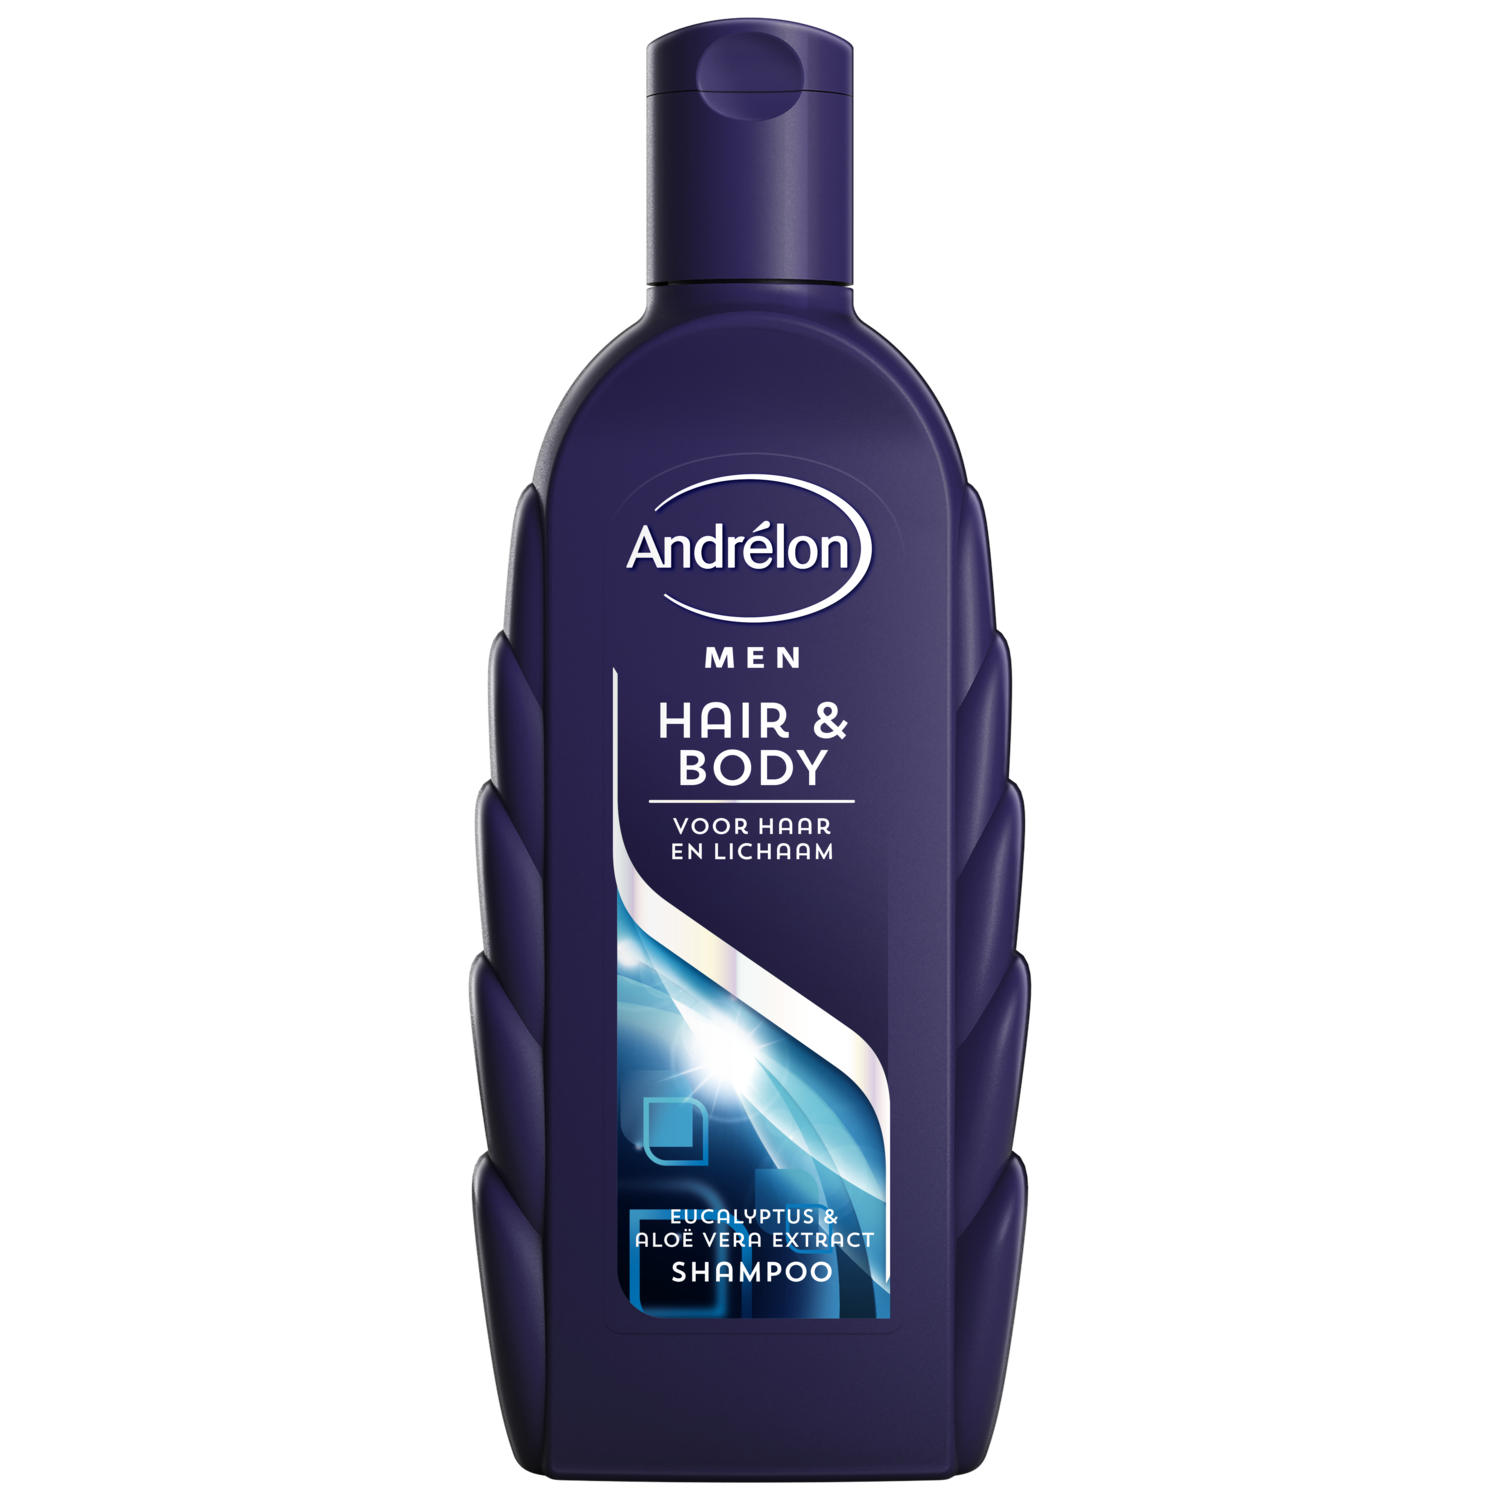 Andrelon Classic Hair Body Men SH 300ml 8710447321669